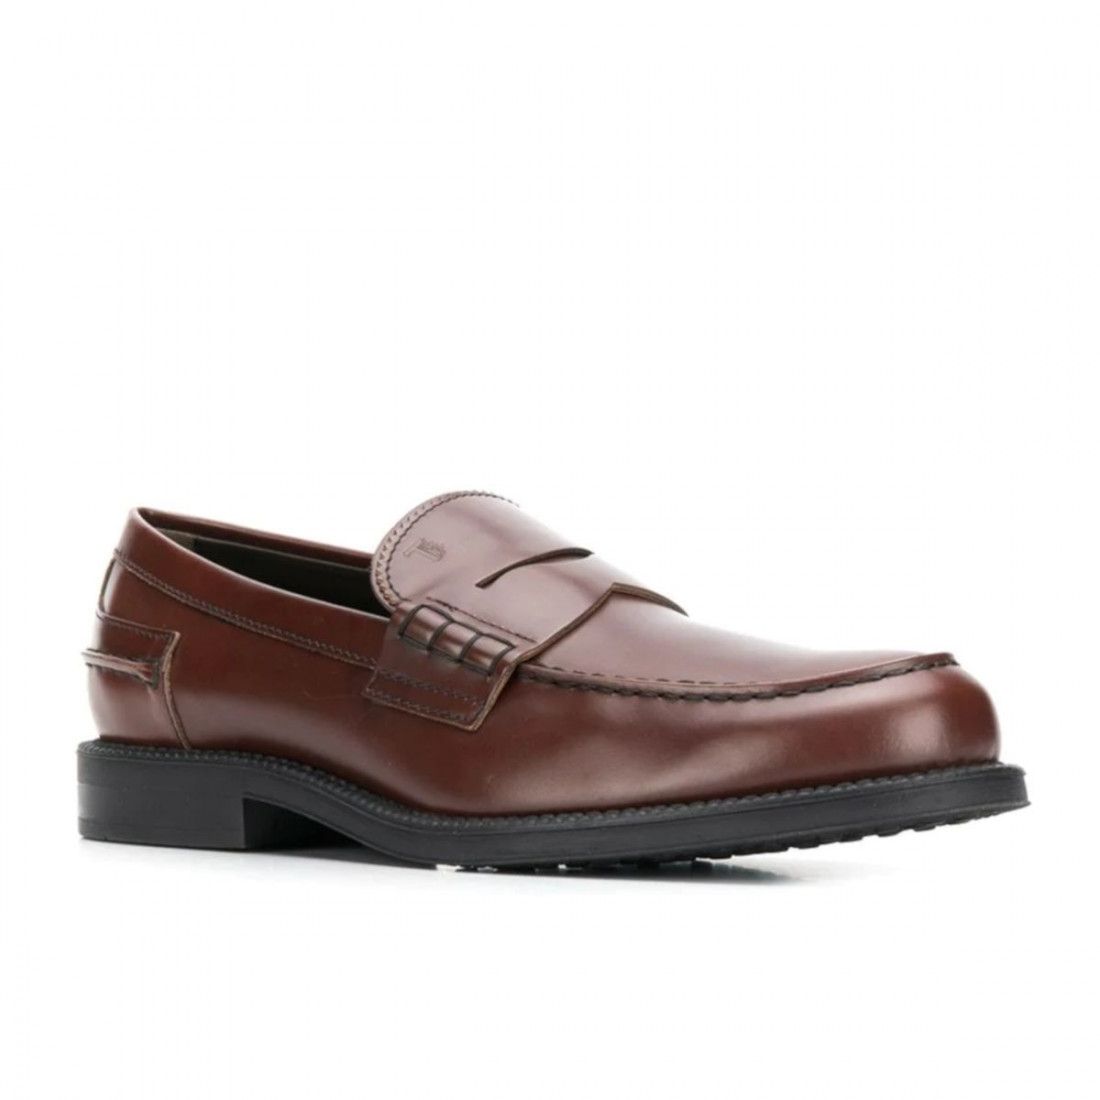 loafers man tods xxm80b0br30lygs602 5161